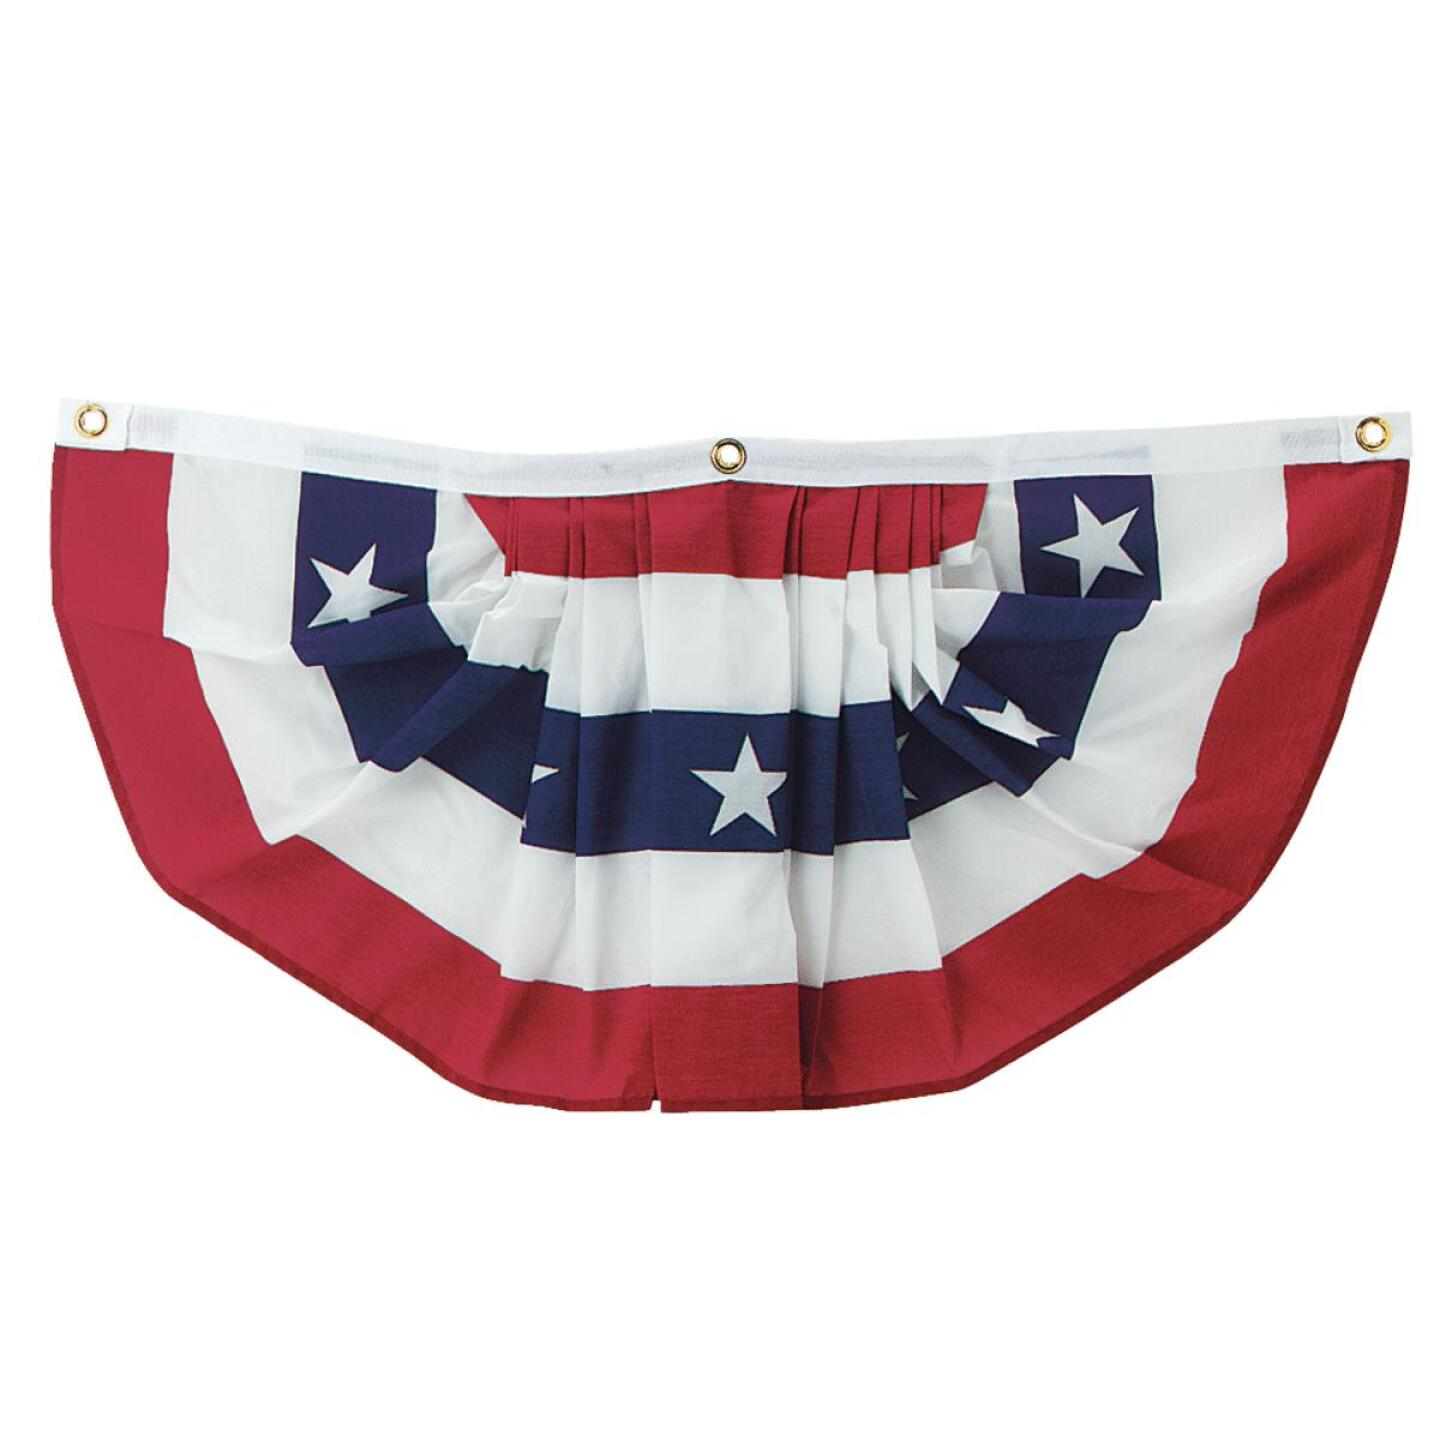 Valley Forge 1 Ft. W. x 3 Ft. L. Polycotton Fan Flag Bunting Image 1